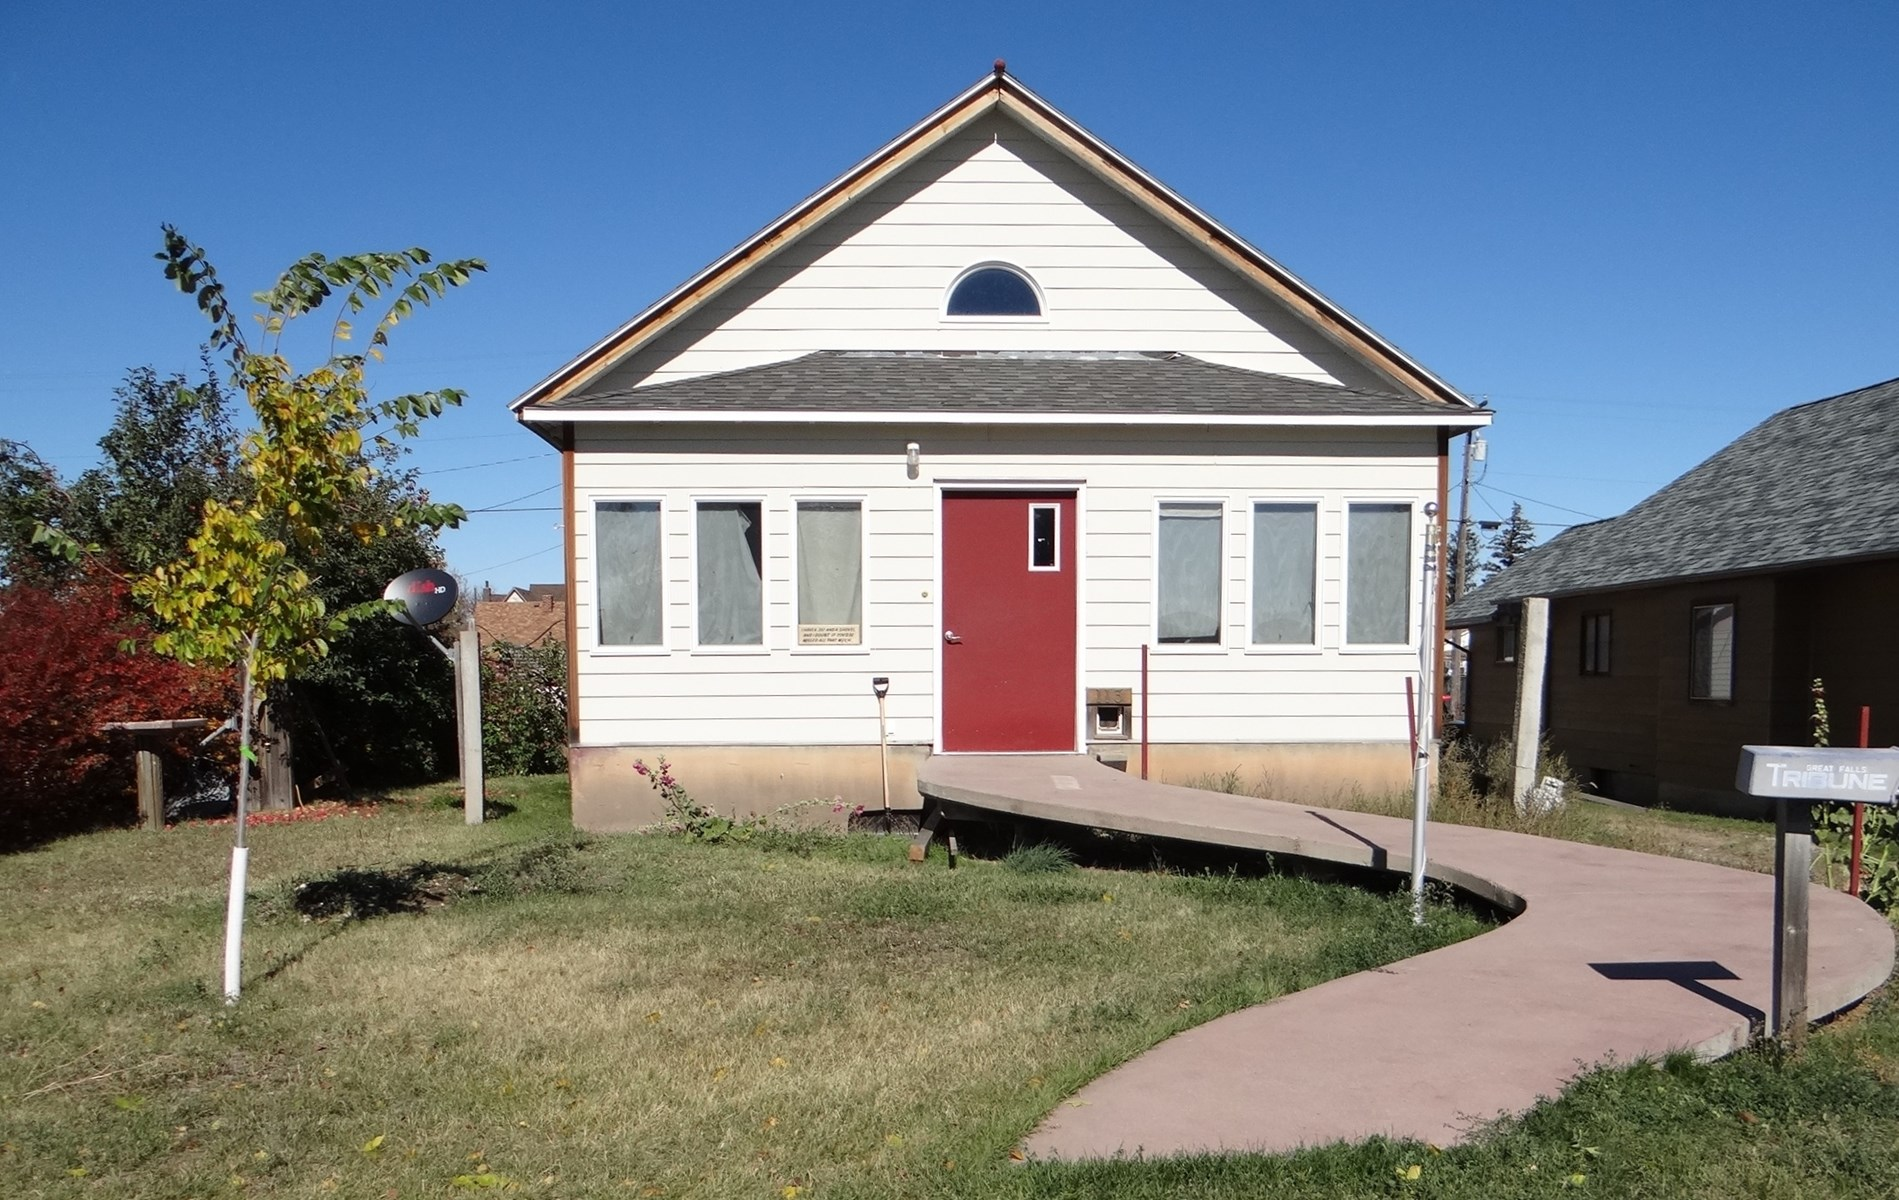 Home and Vacant Lots in Stanford, Montana